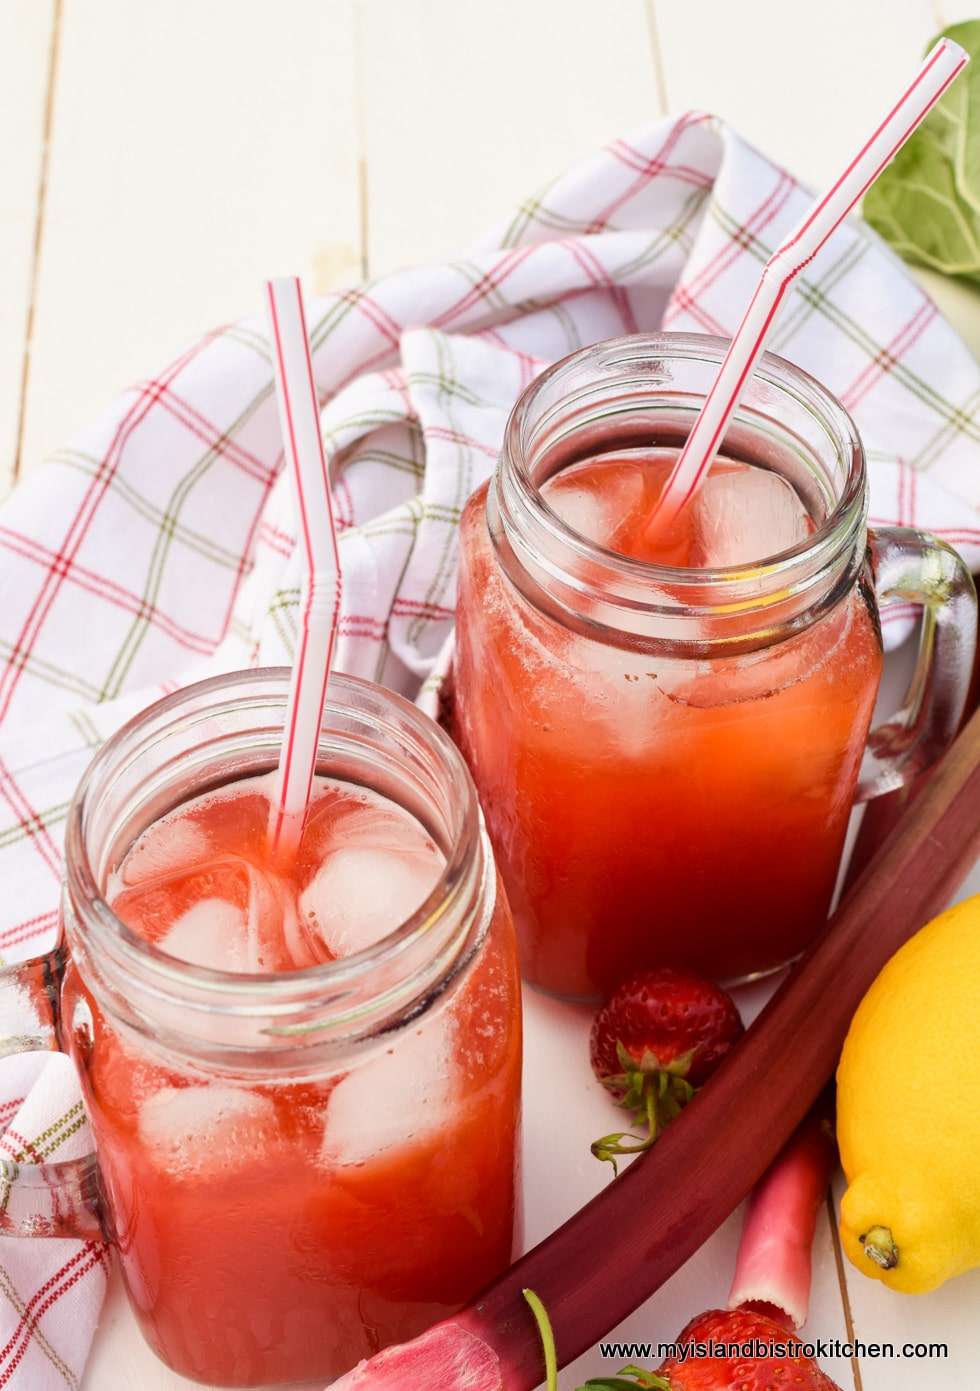 Jars of Strawberry Rhubarb Lemonade